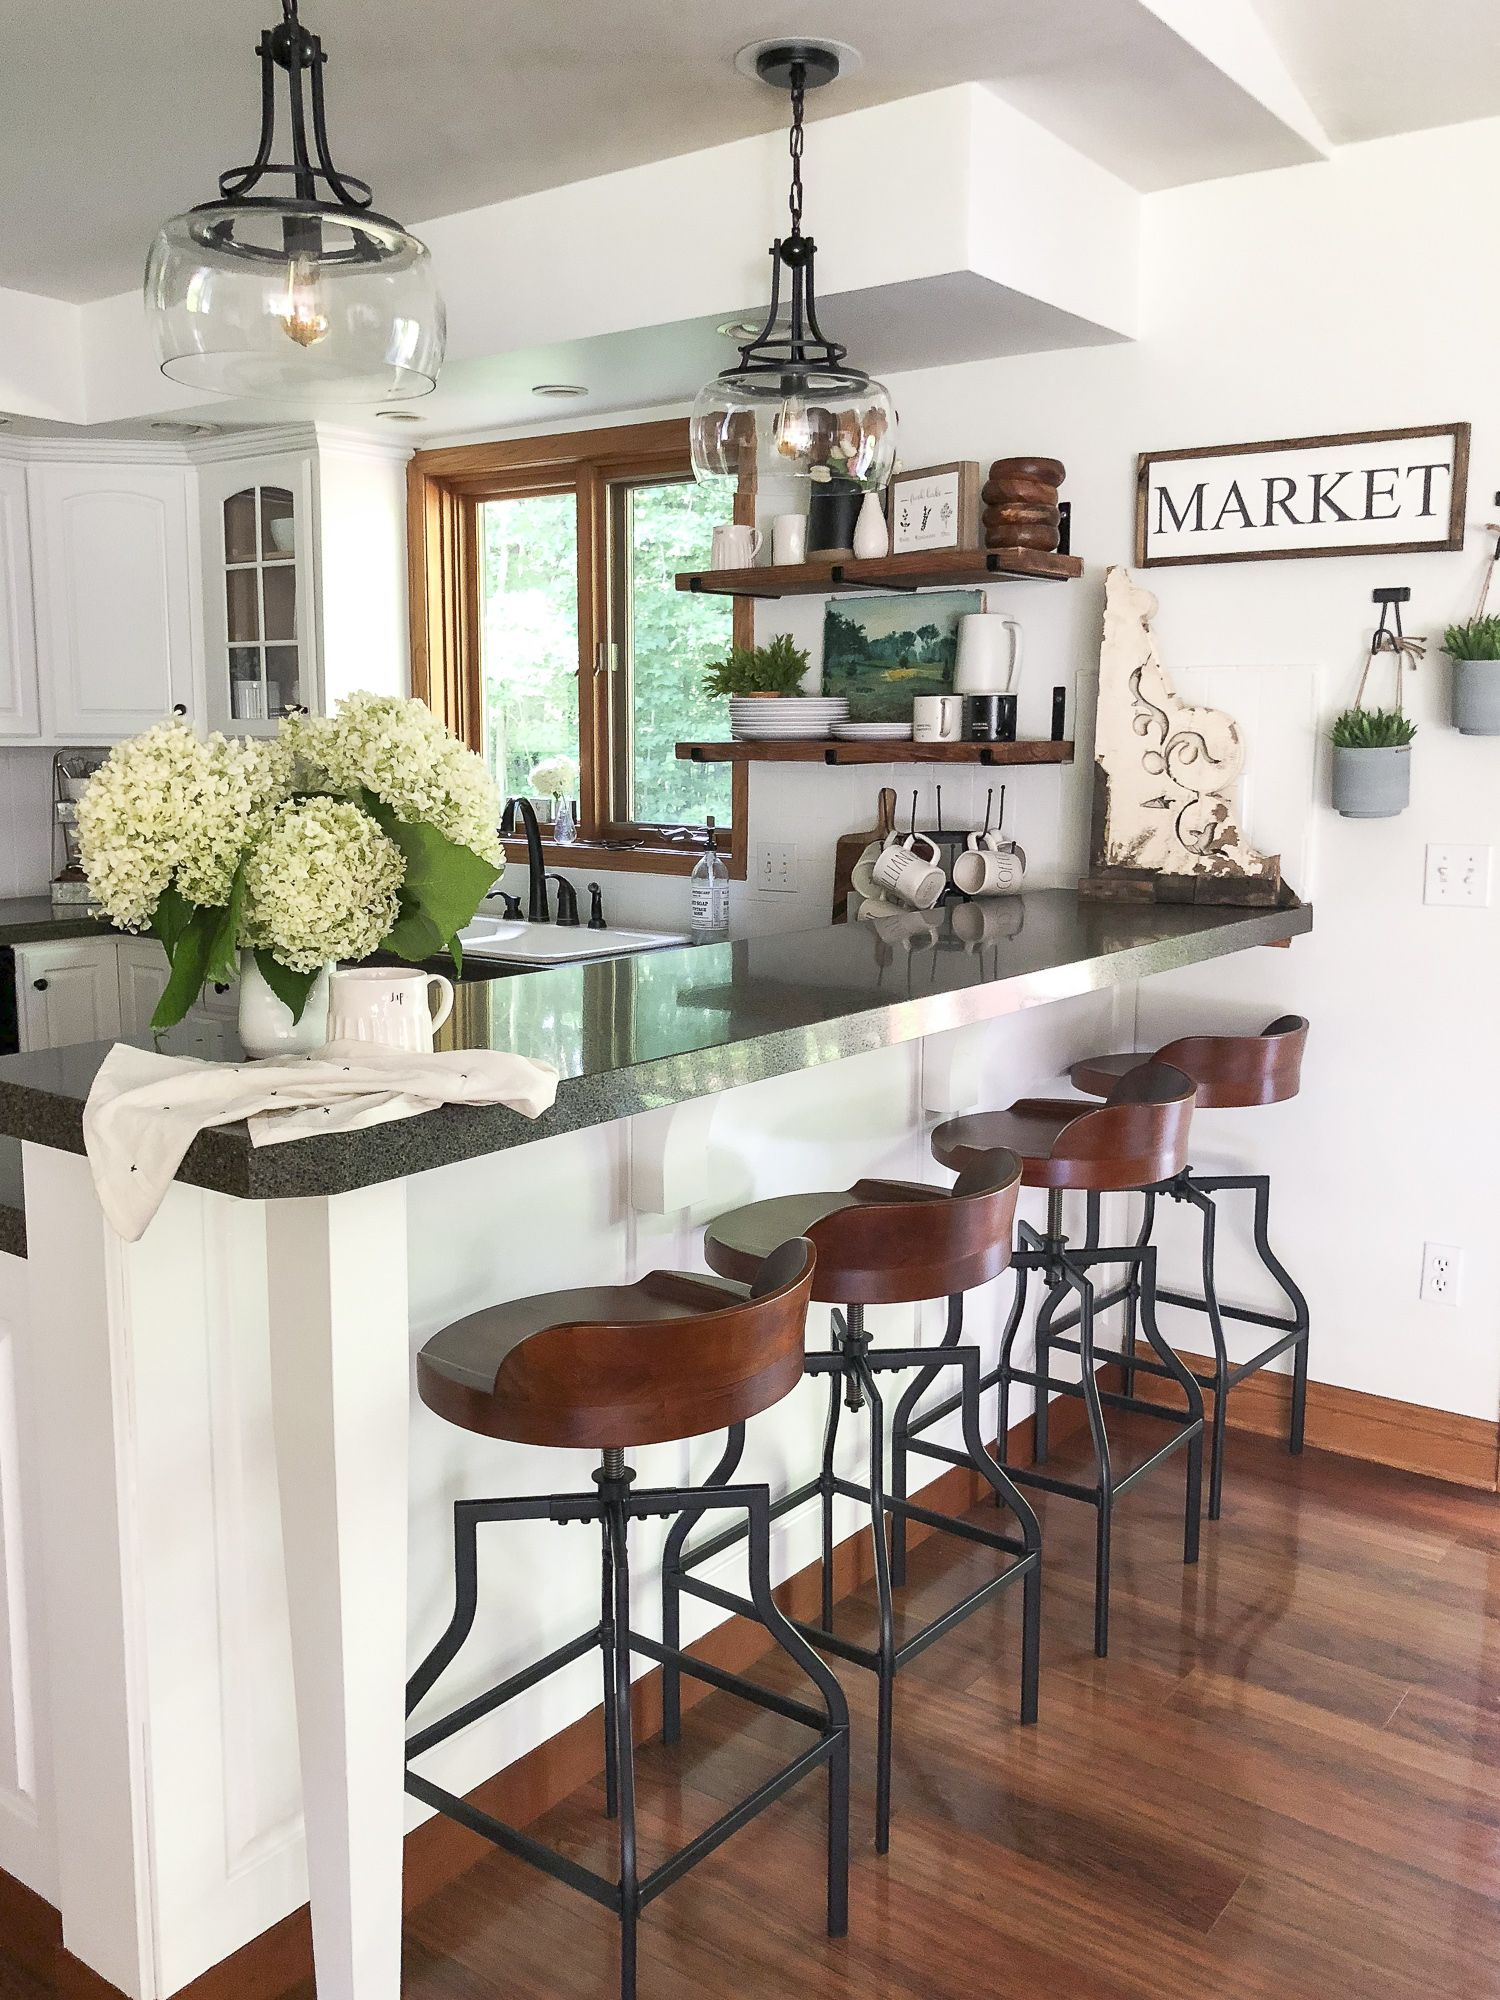 kitchen remodel on a budget  the reveal  budget kitchen